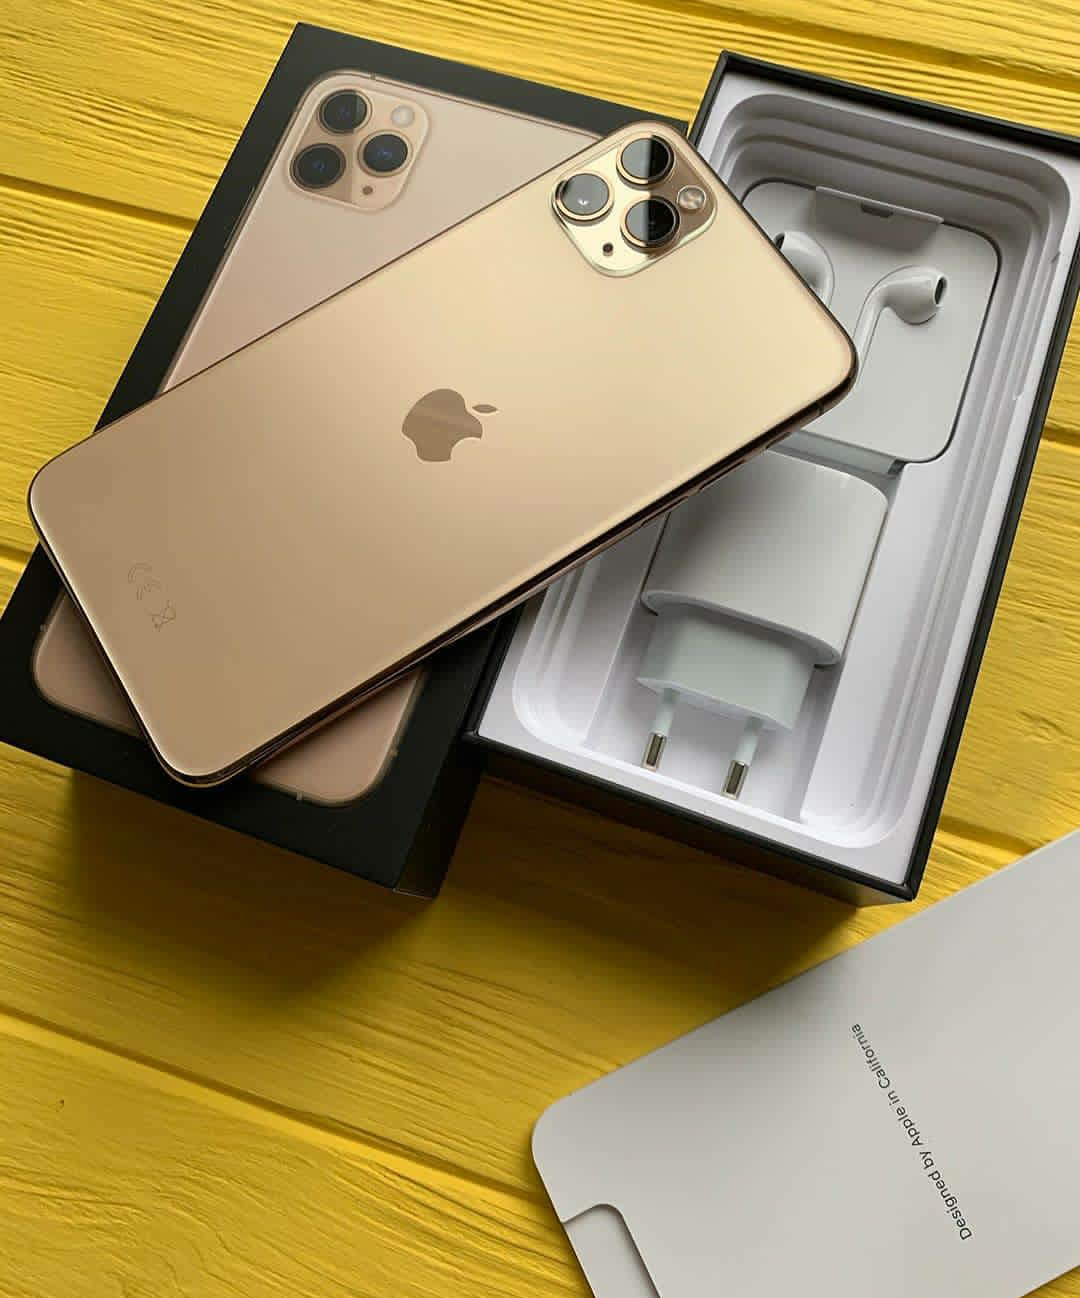 Iphone 11 Pro Max In Gold Unboxing Apple Iphone Accessories Apple Smartphone Apple Mobile Phones